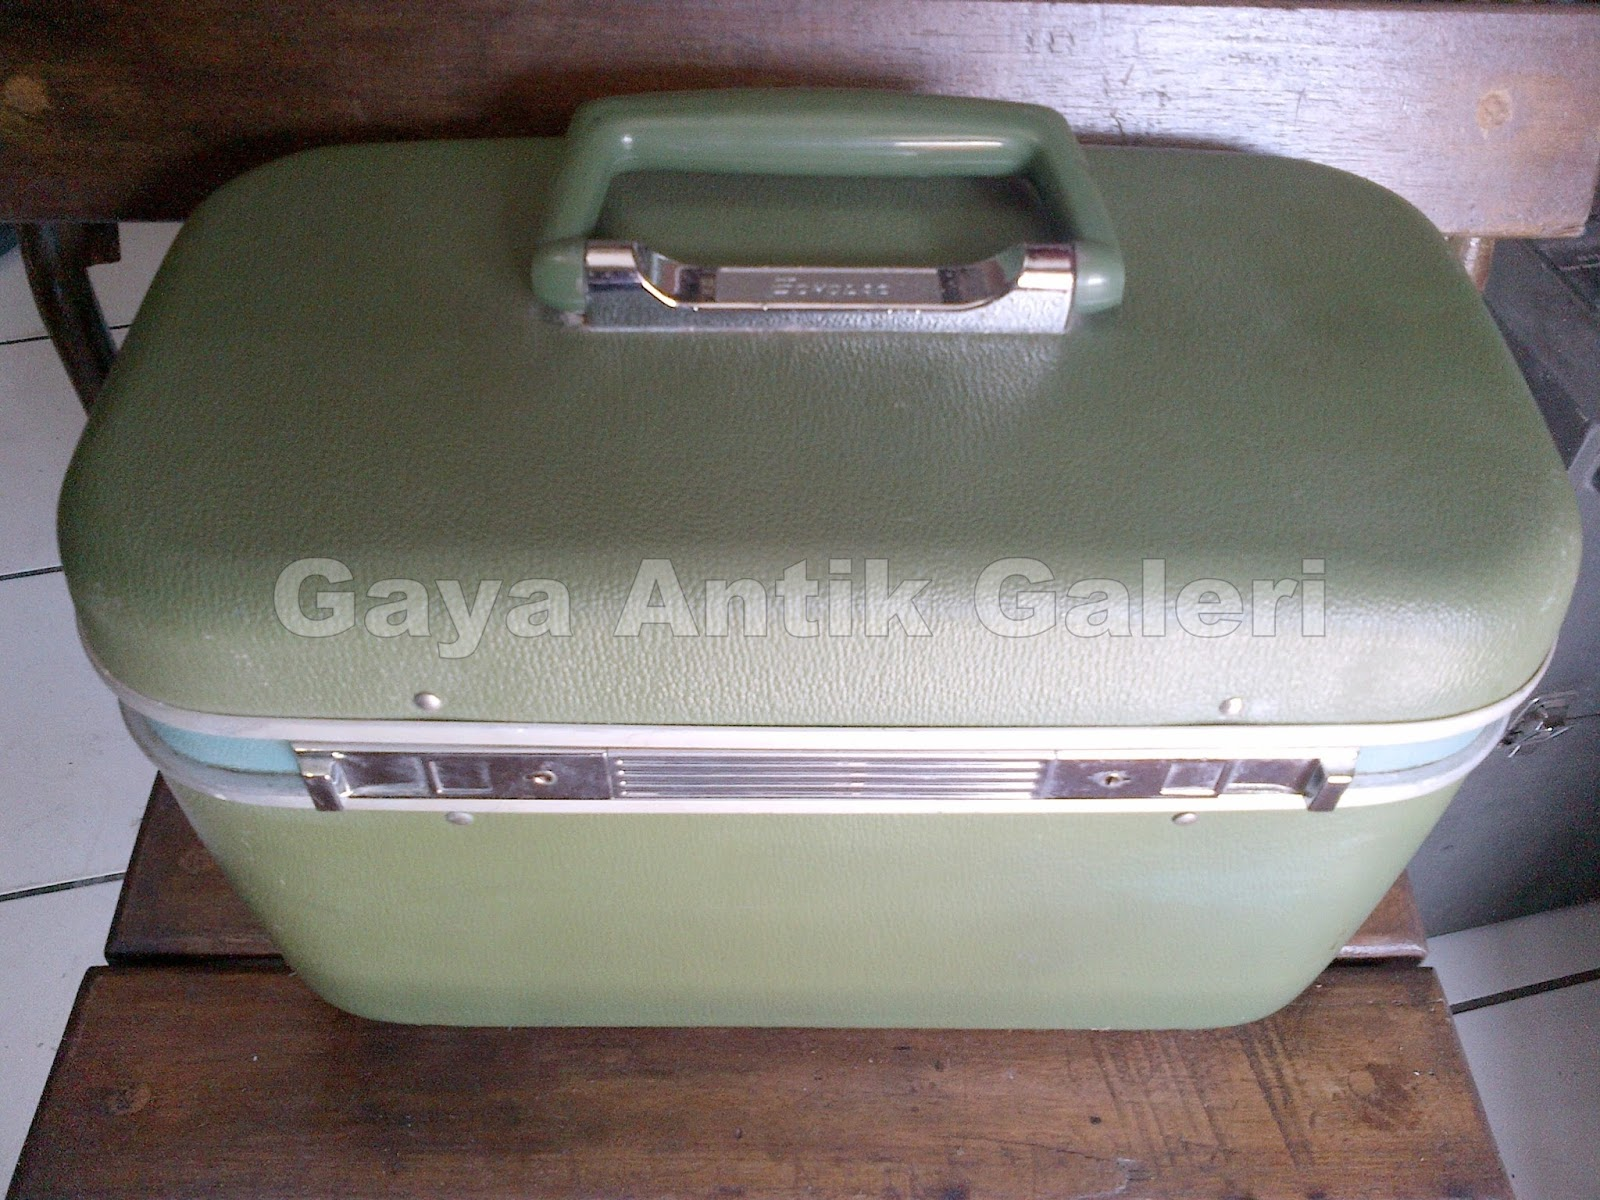 Gaya Antik Galeri Gaya Antique Gallery Beauty Case